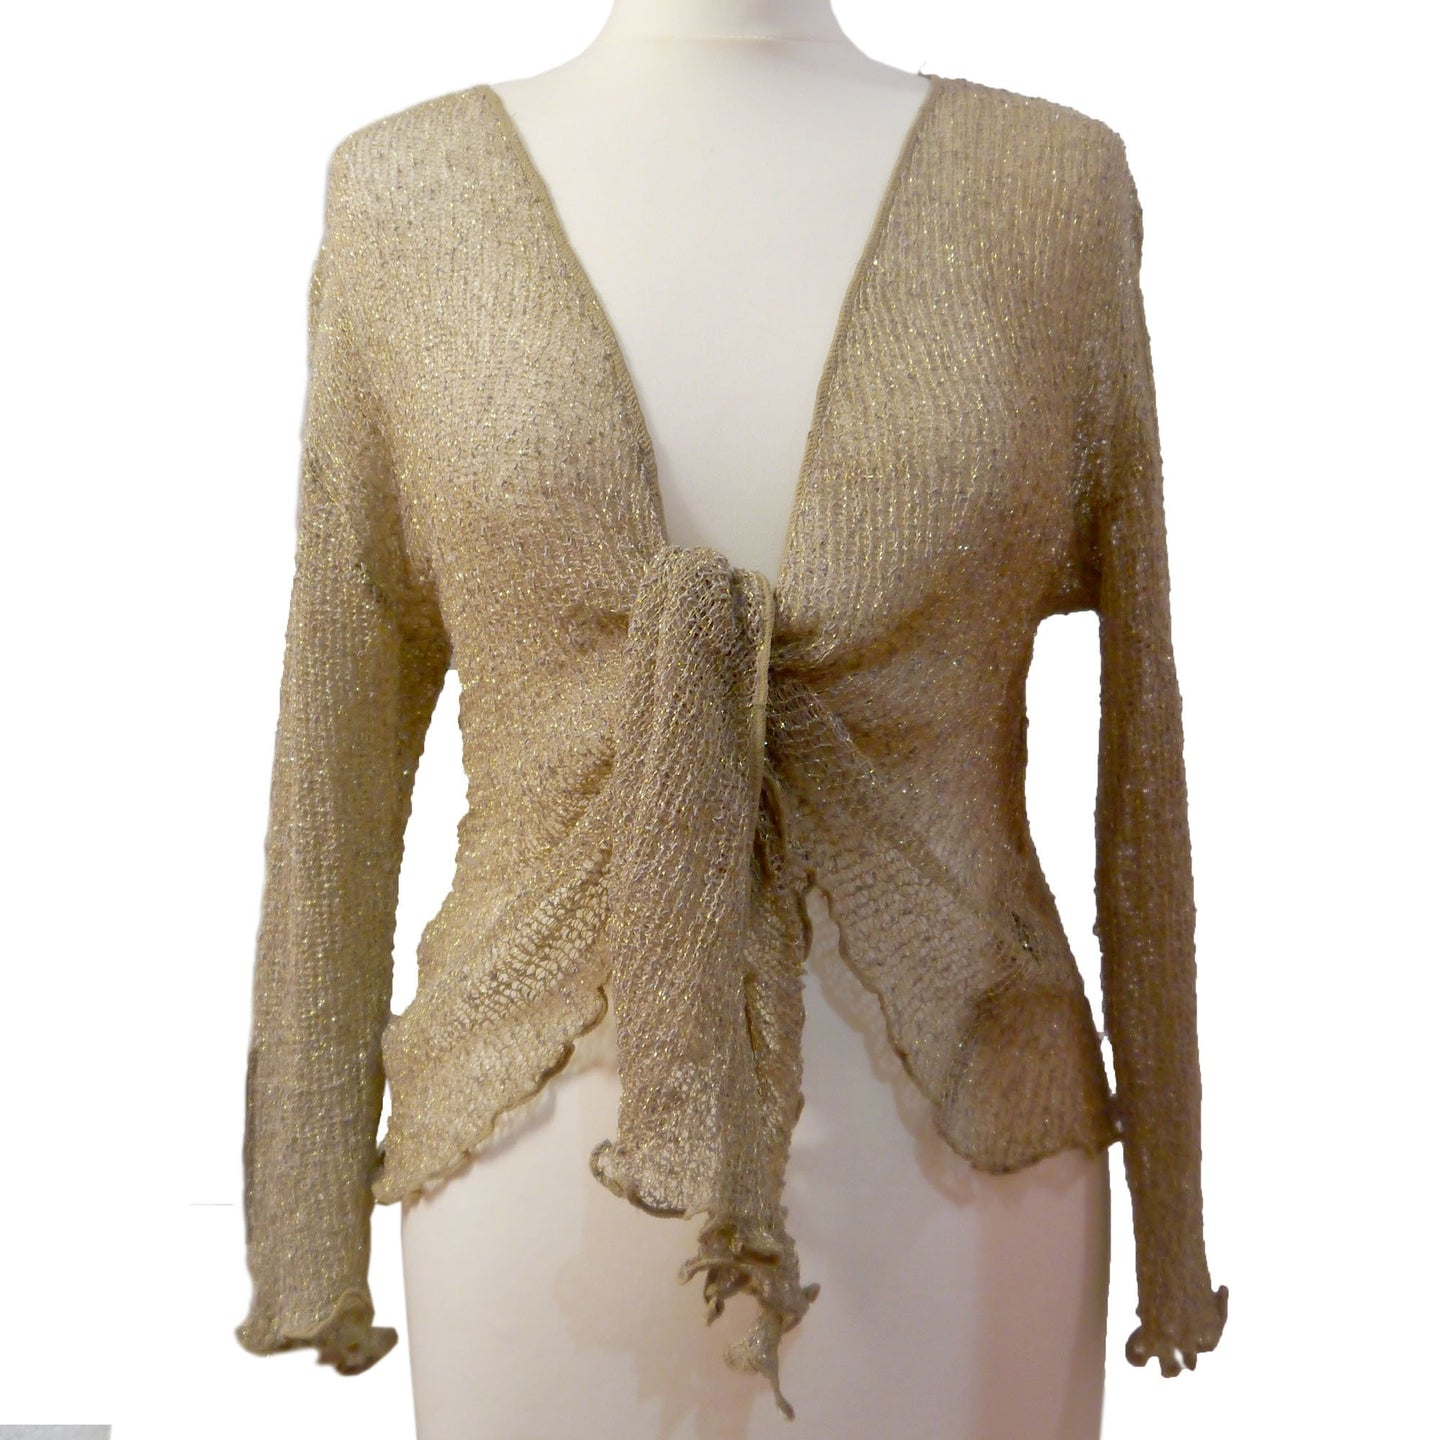 Gold and Gold Sparkly Crochet Shrug